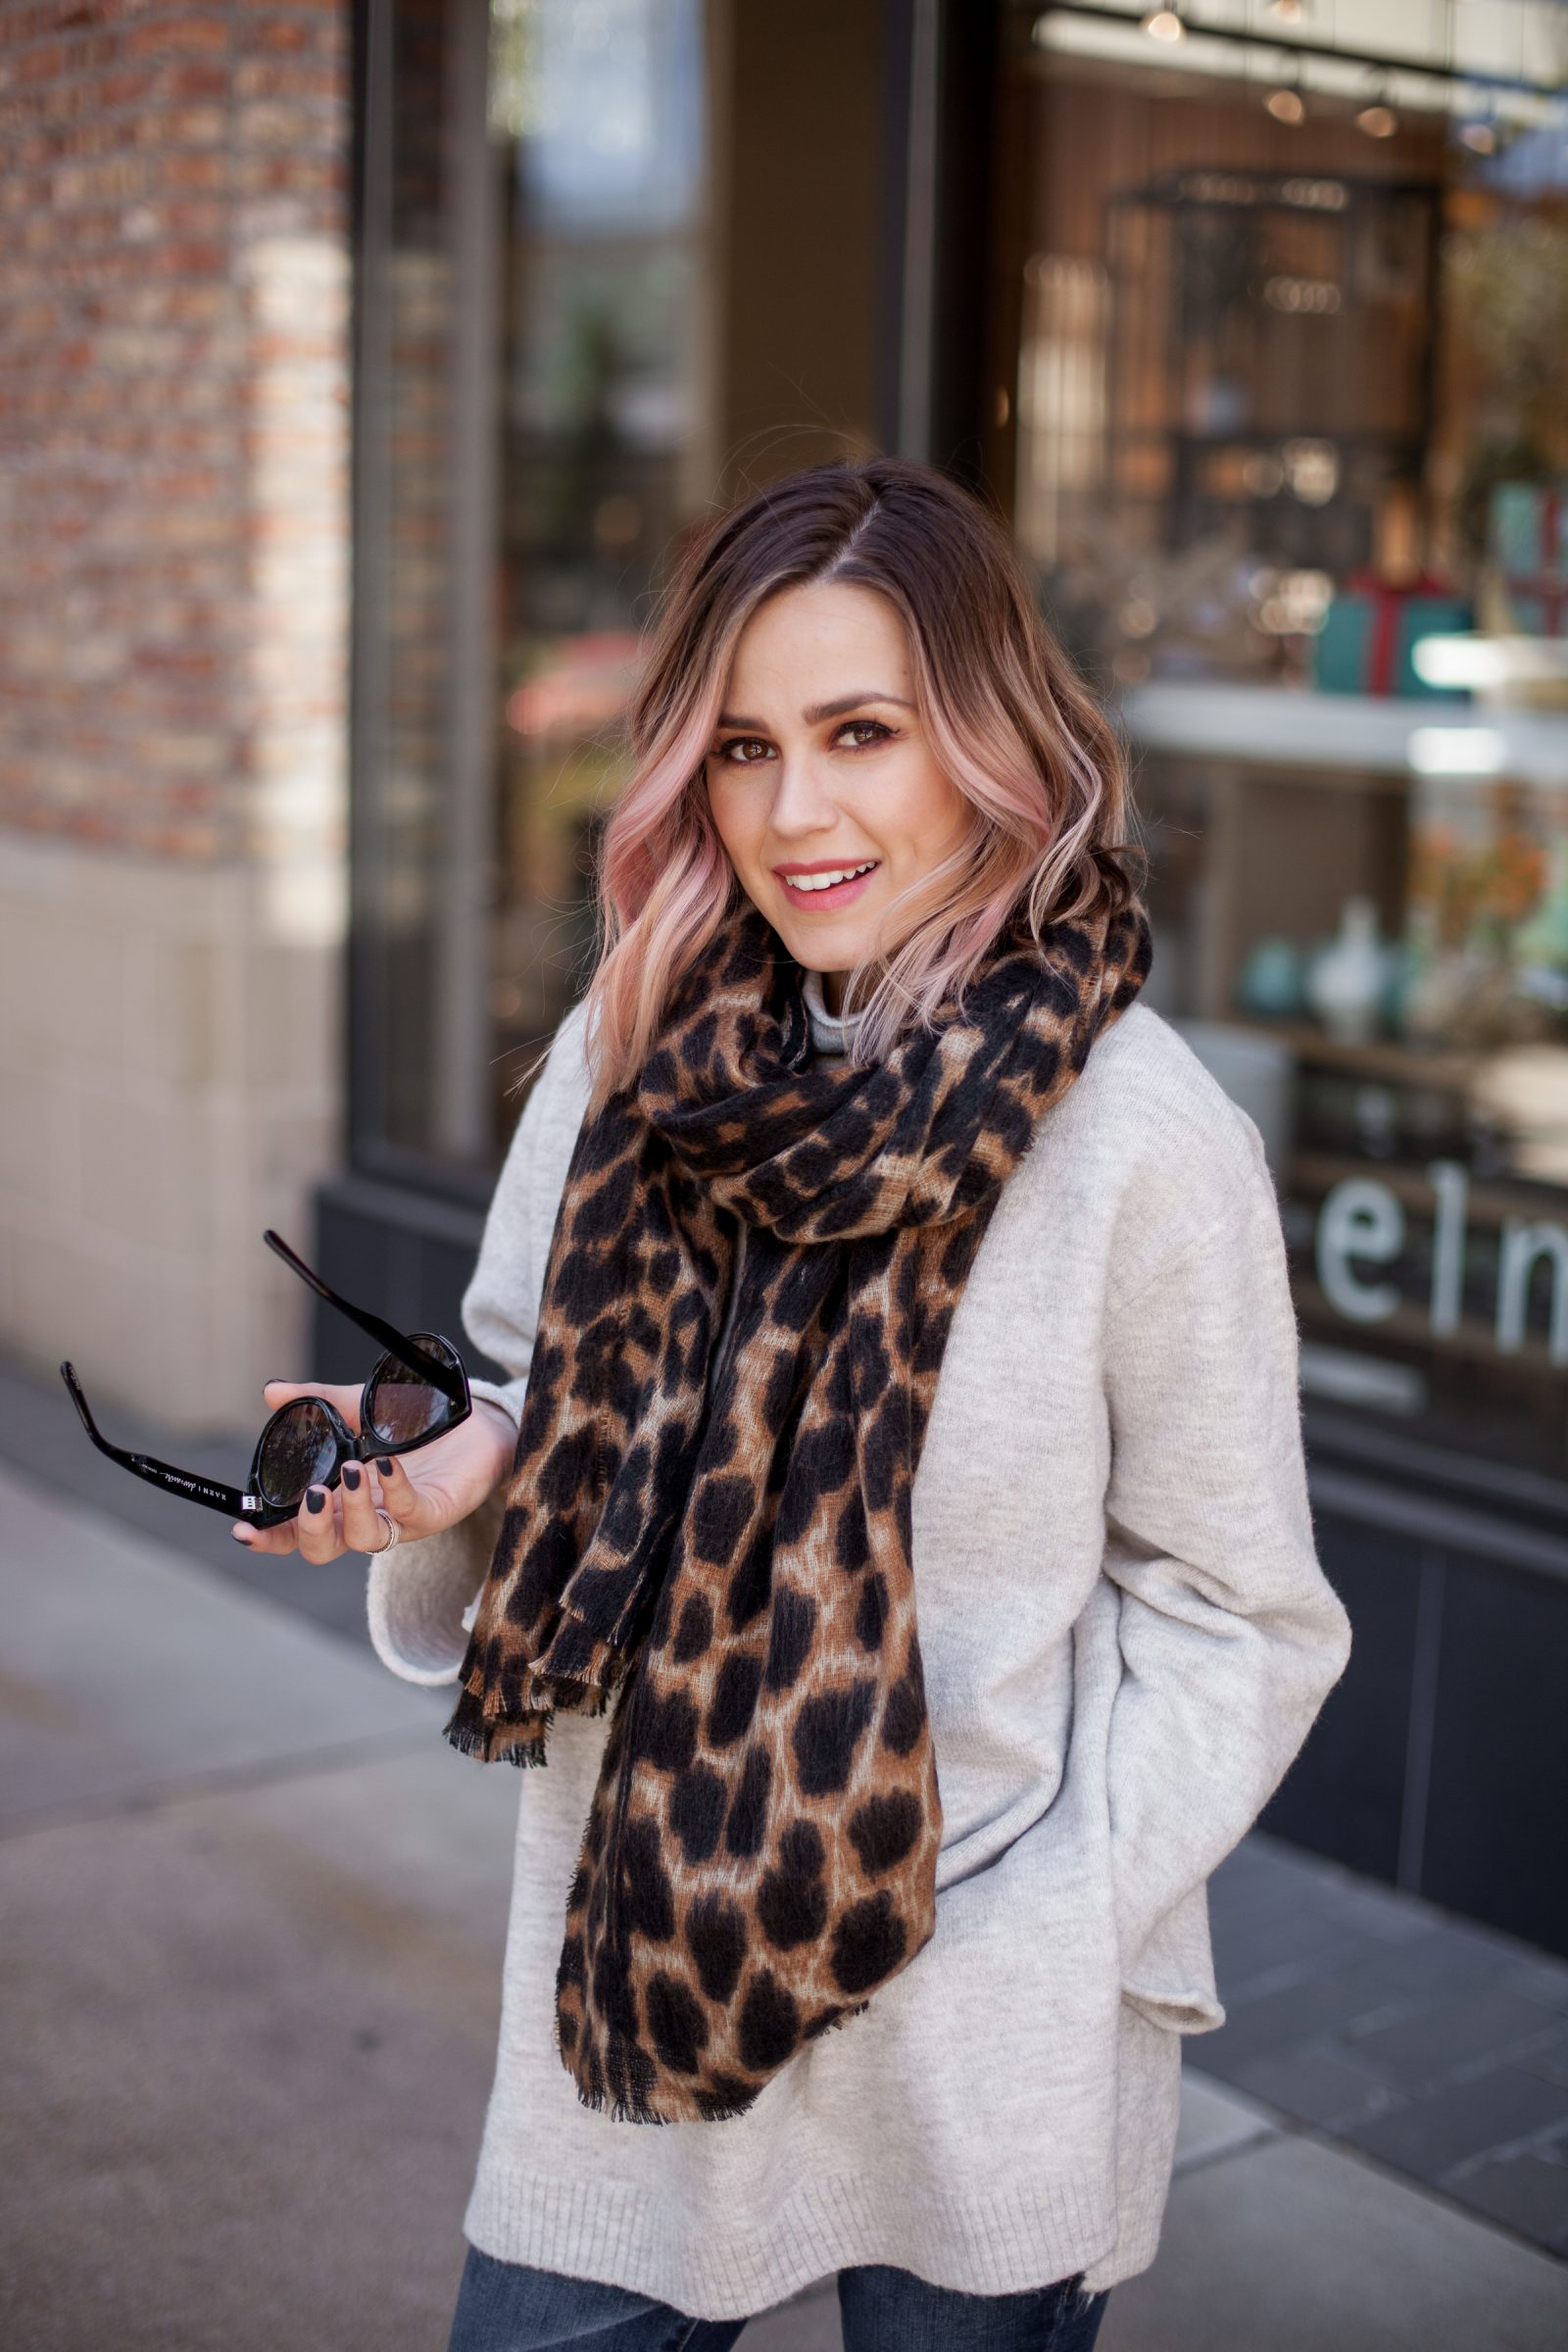 Uptown with Elly Brown shares a Comfy winter outfit | Thanksgiving outfit | Comfy Holiday outfit | Oversized scarf